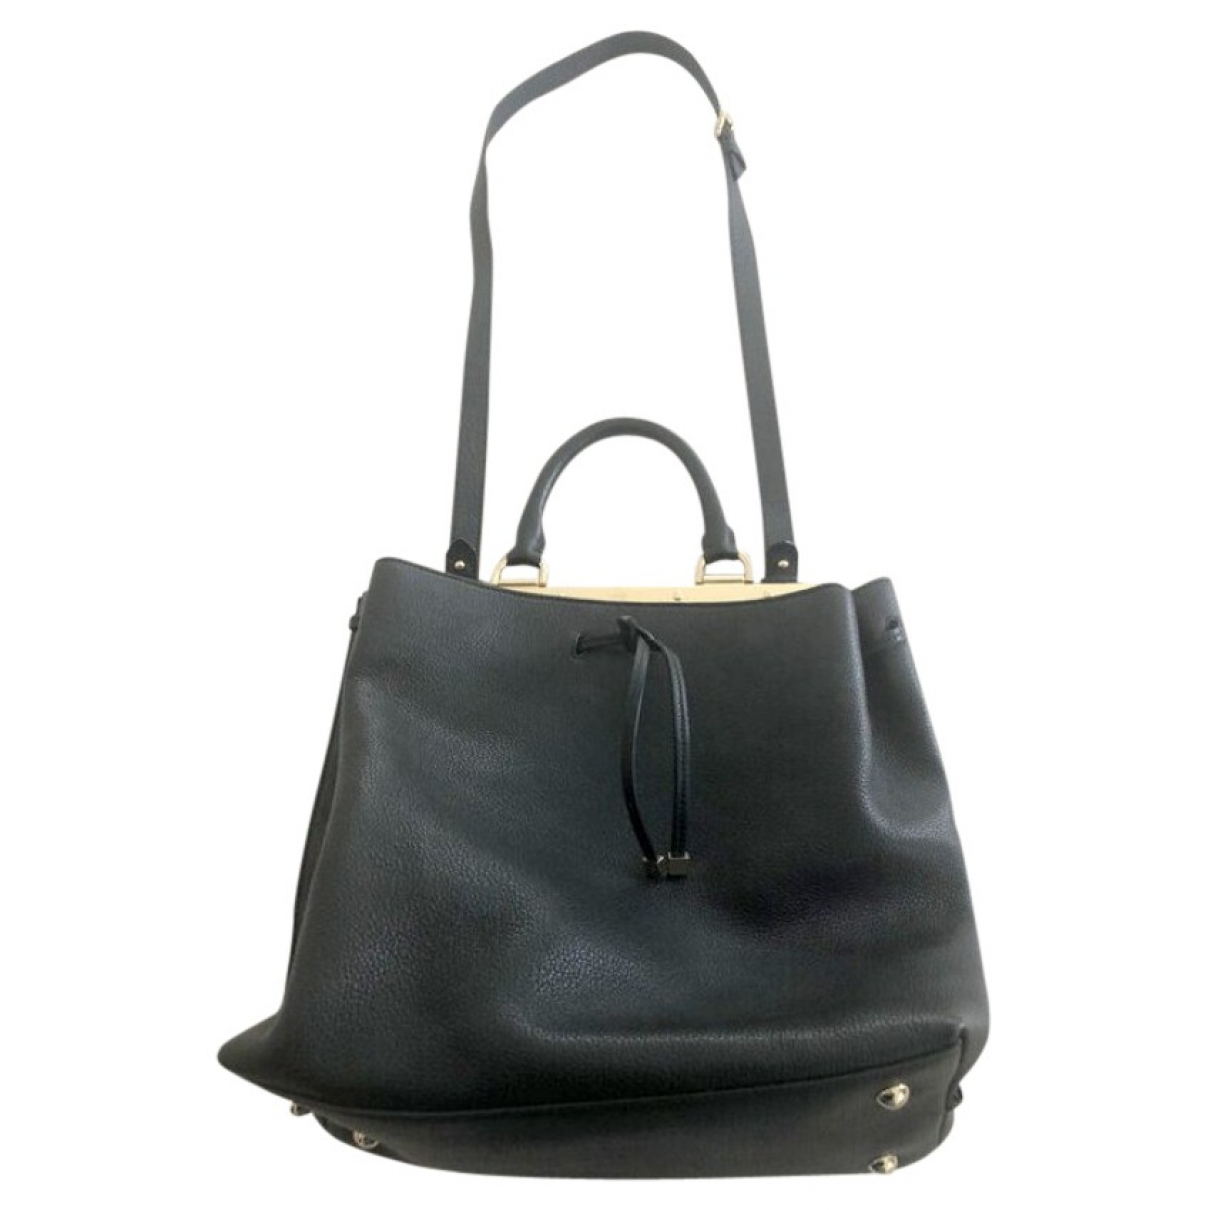 Mulberry \N Black Leather handbag for Women \N